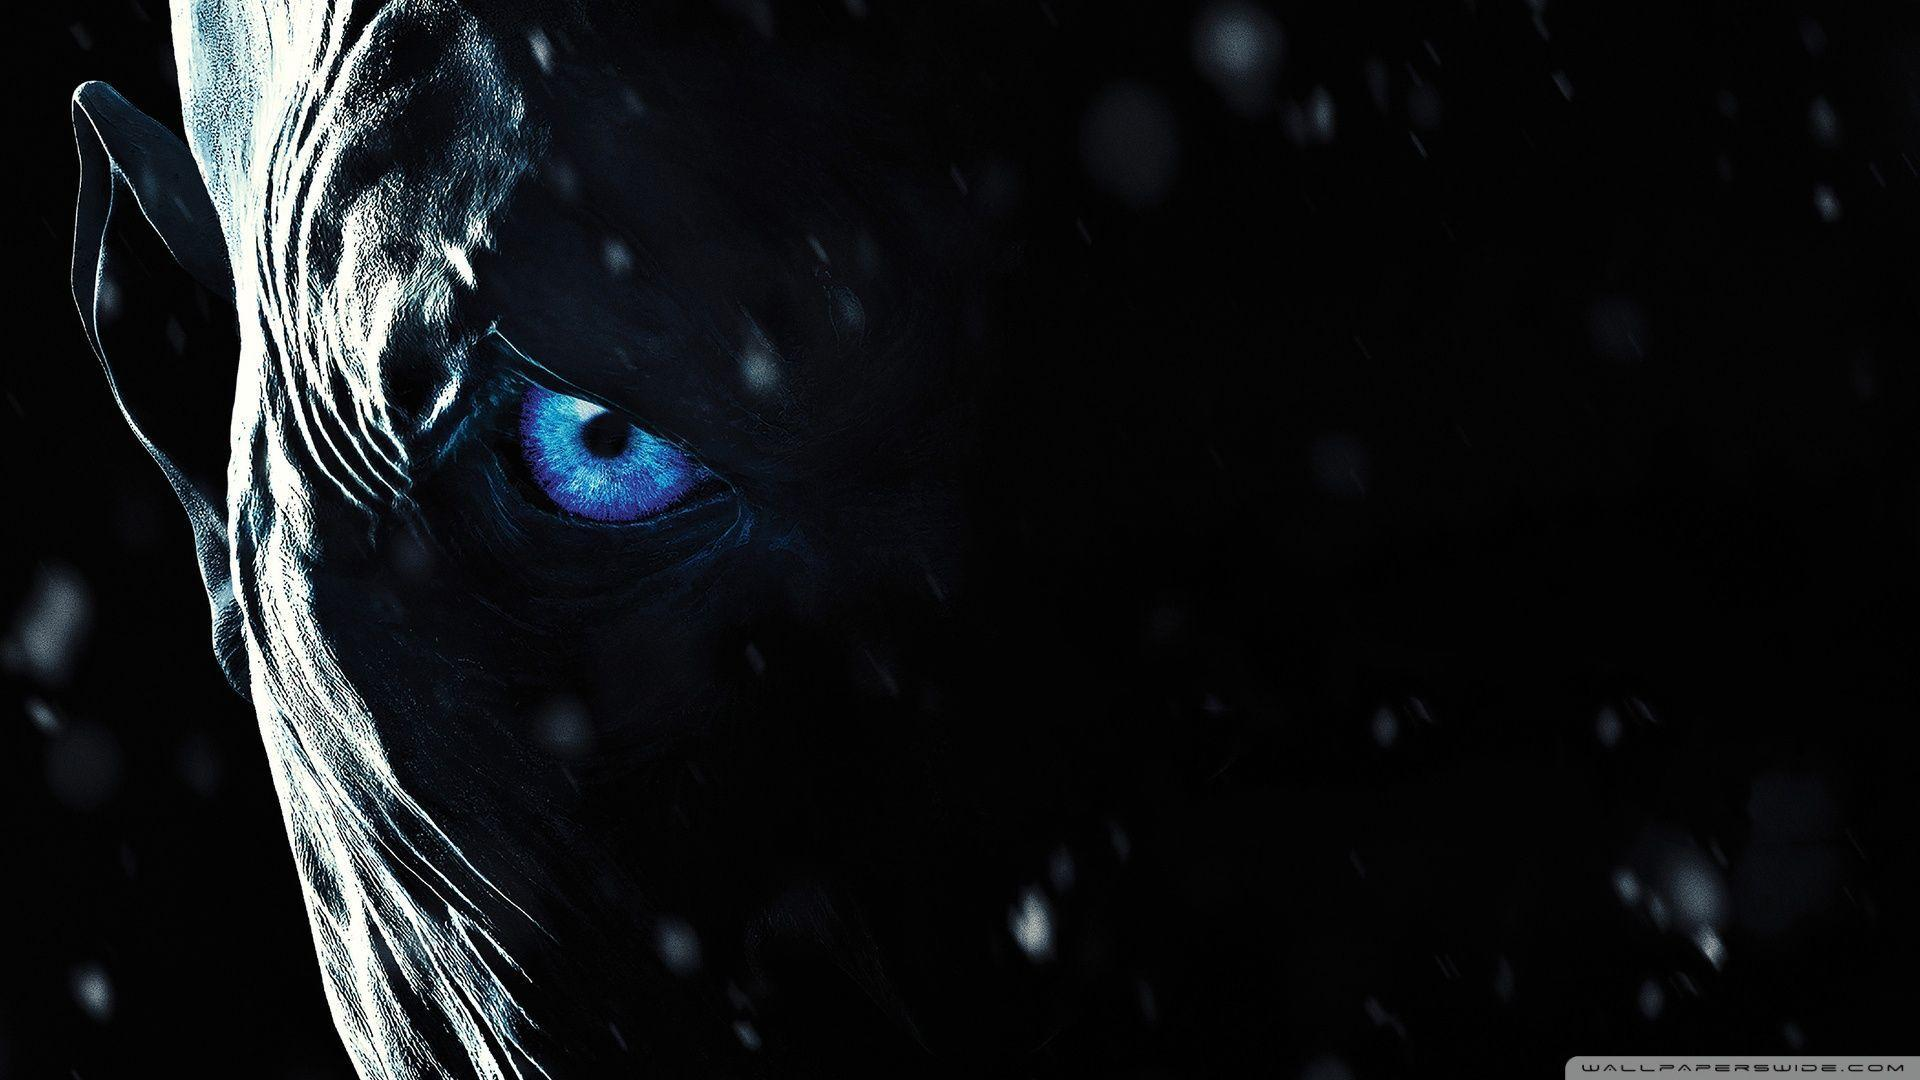 1080p Night King Wallpaper enjoy gameofthrones 1920x1080